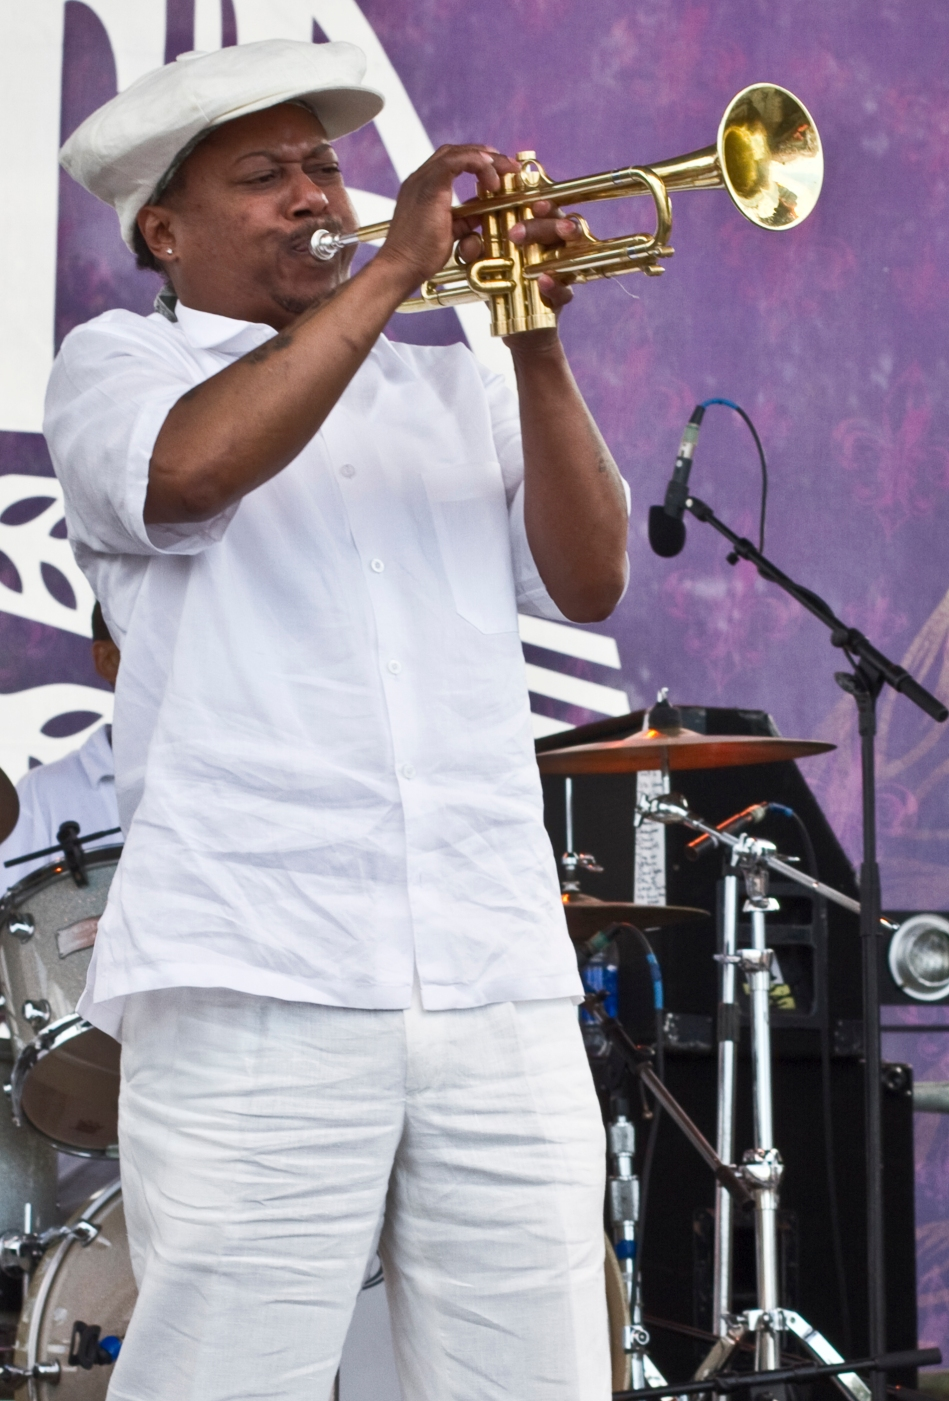 Kermit Ruffins performing at French Quarter Fest, New Orleans, LA - April 13, 2013